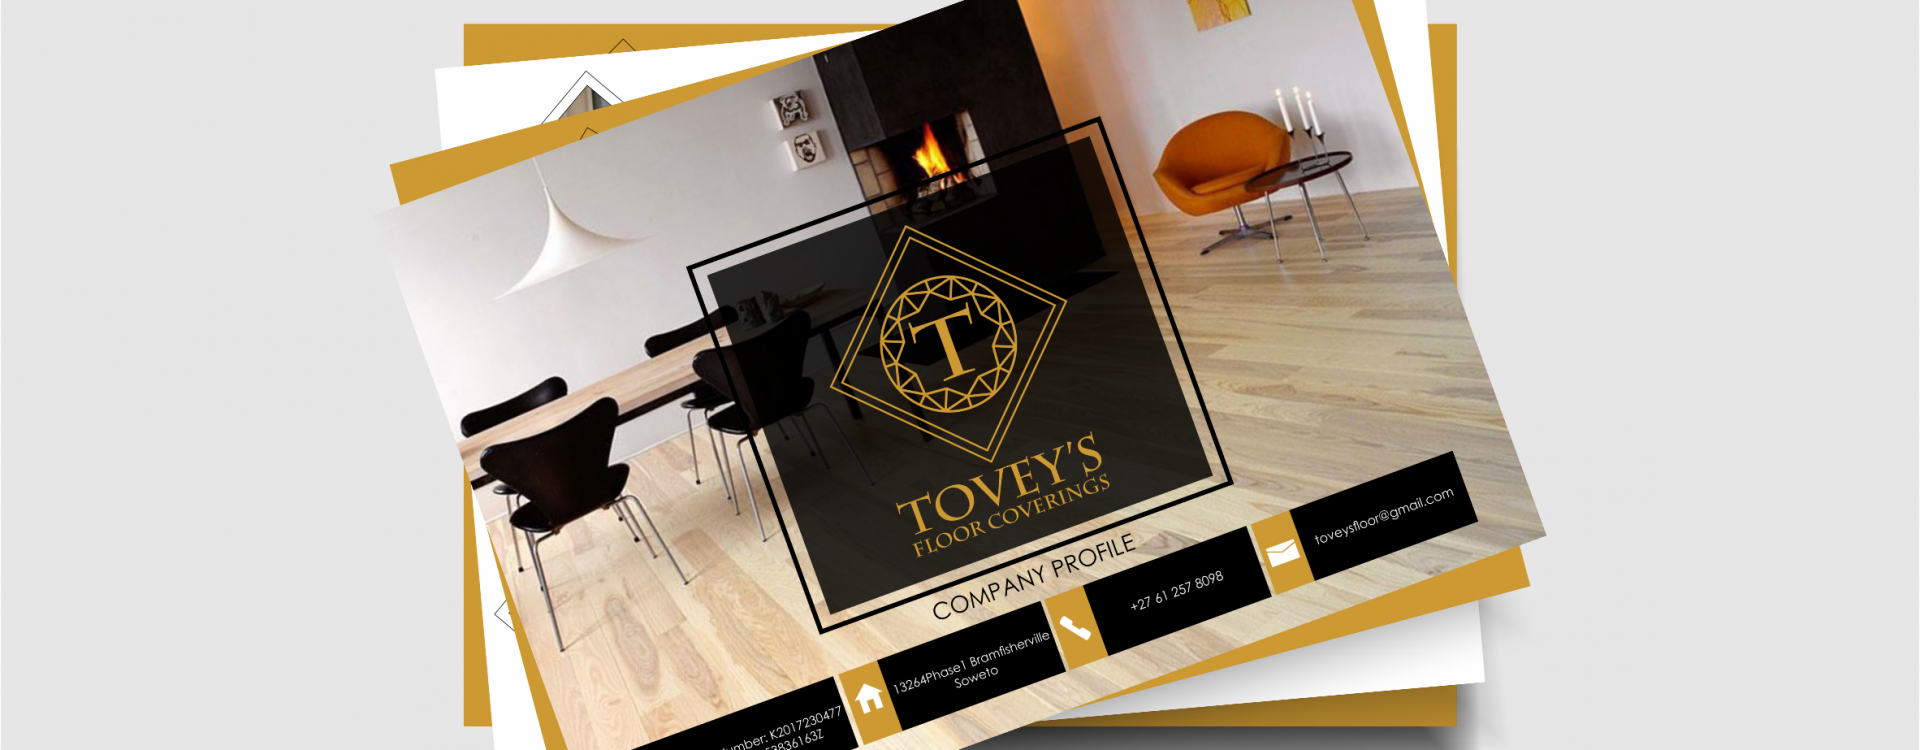 Tovey's Floor Coverings